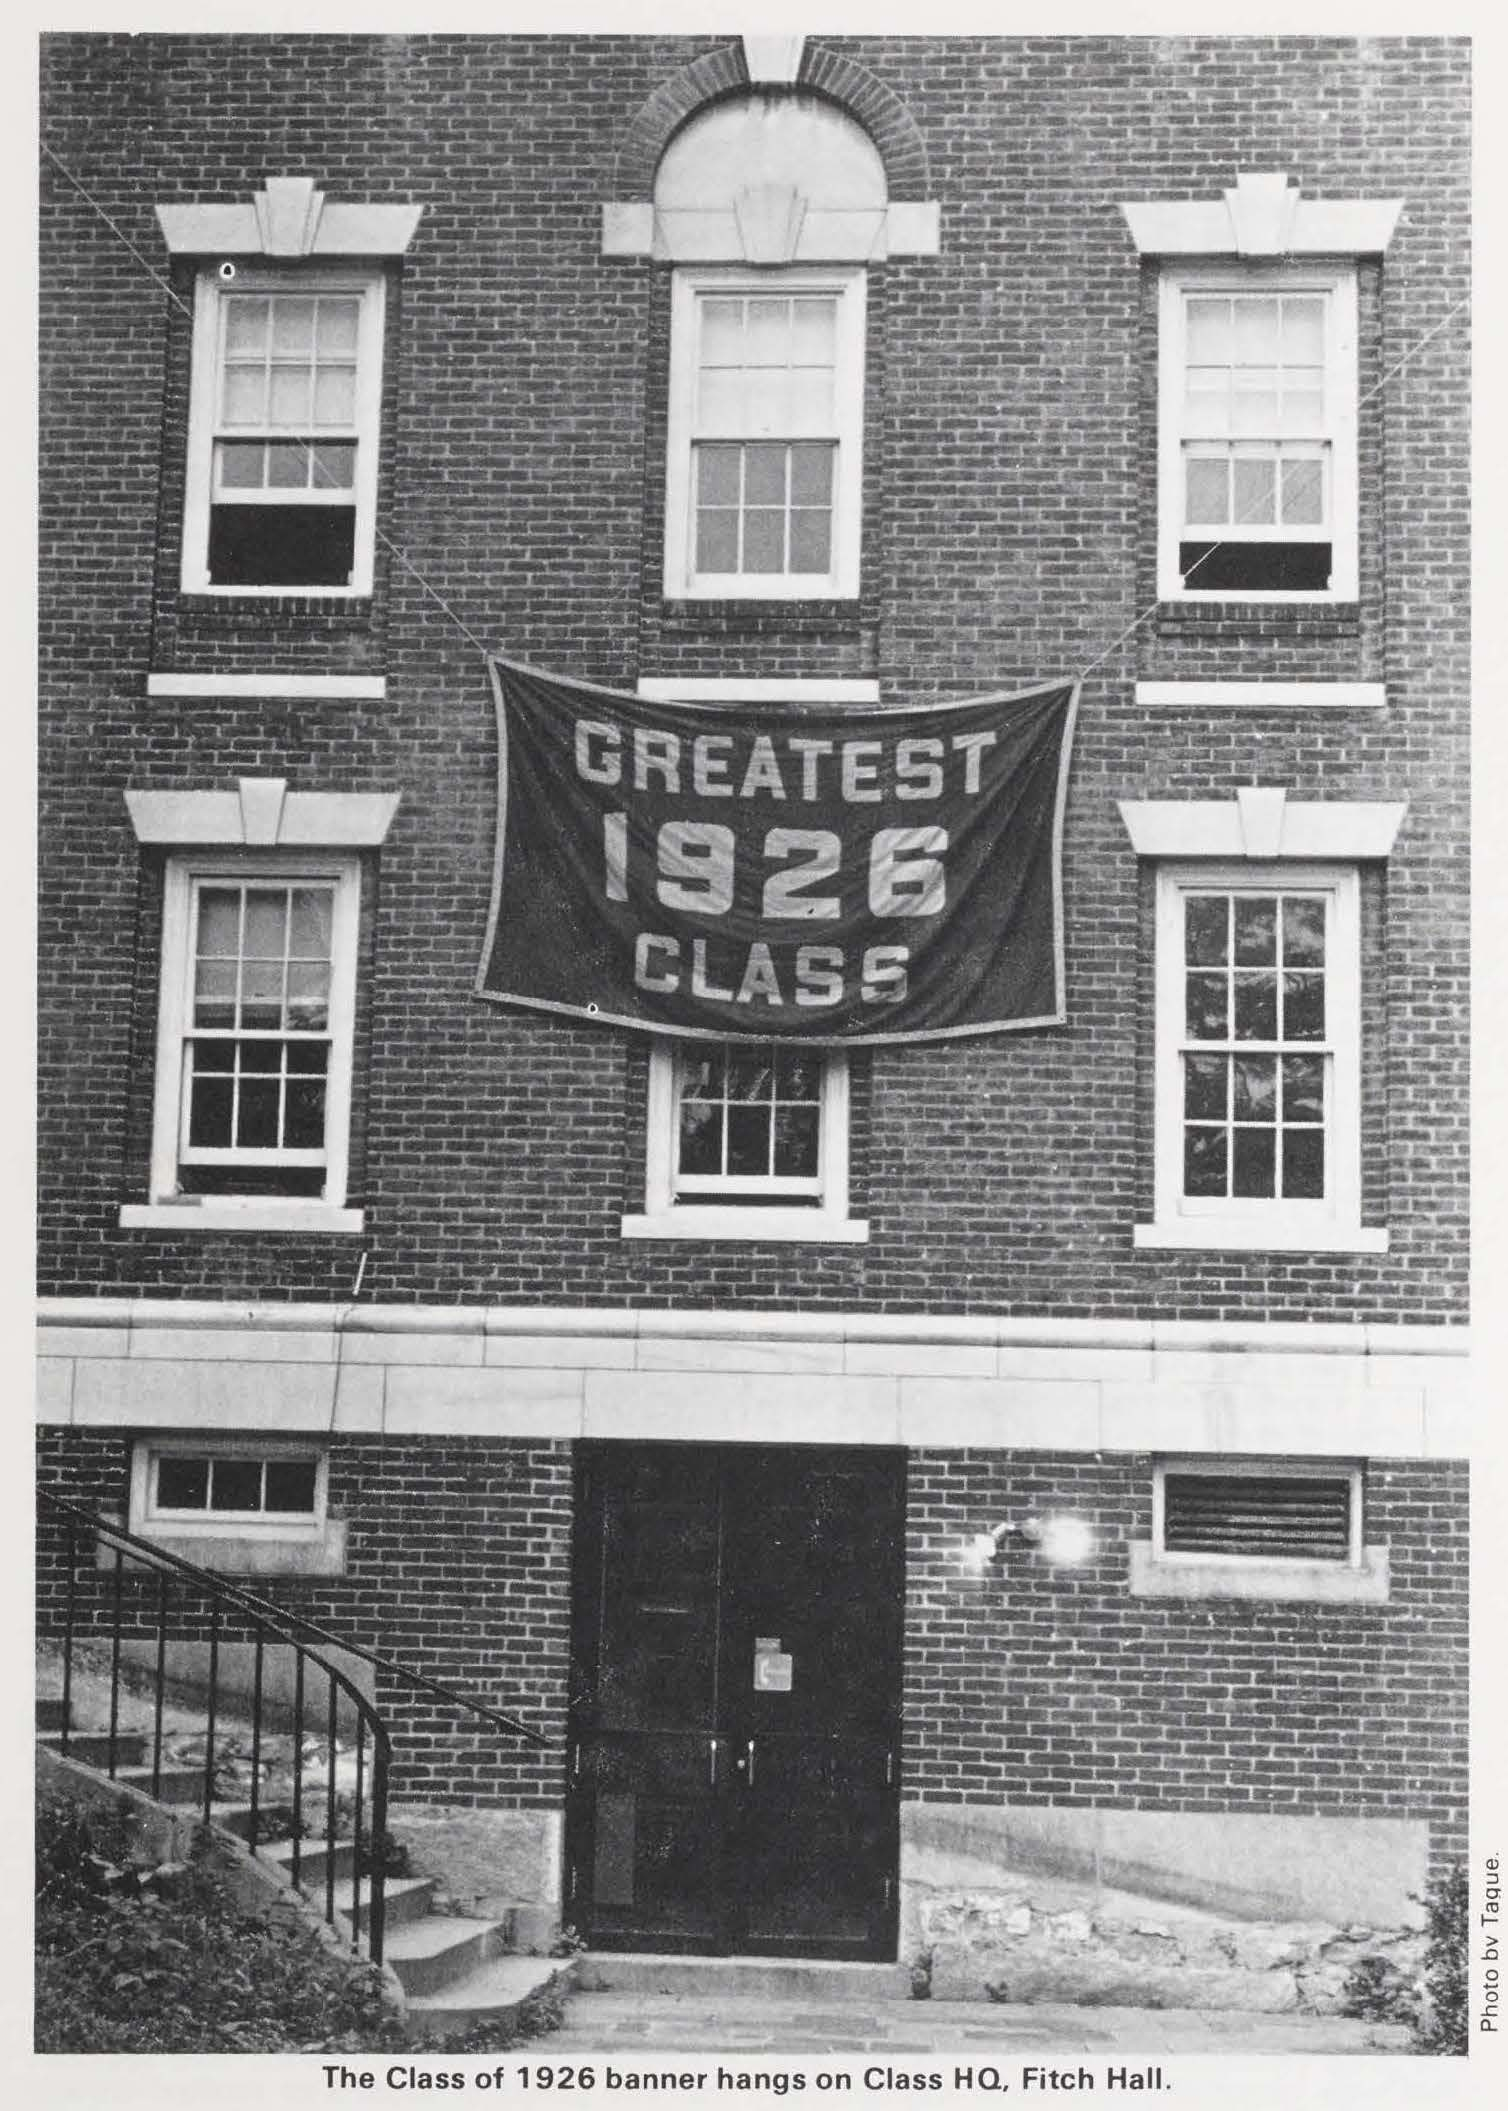 Alumni Review 1981 3 Summer - 1926 greatest class banner hangs on fitch hall